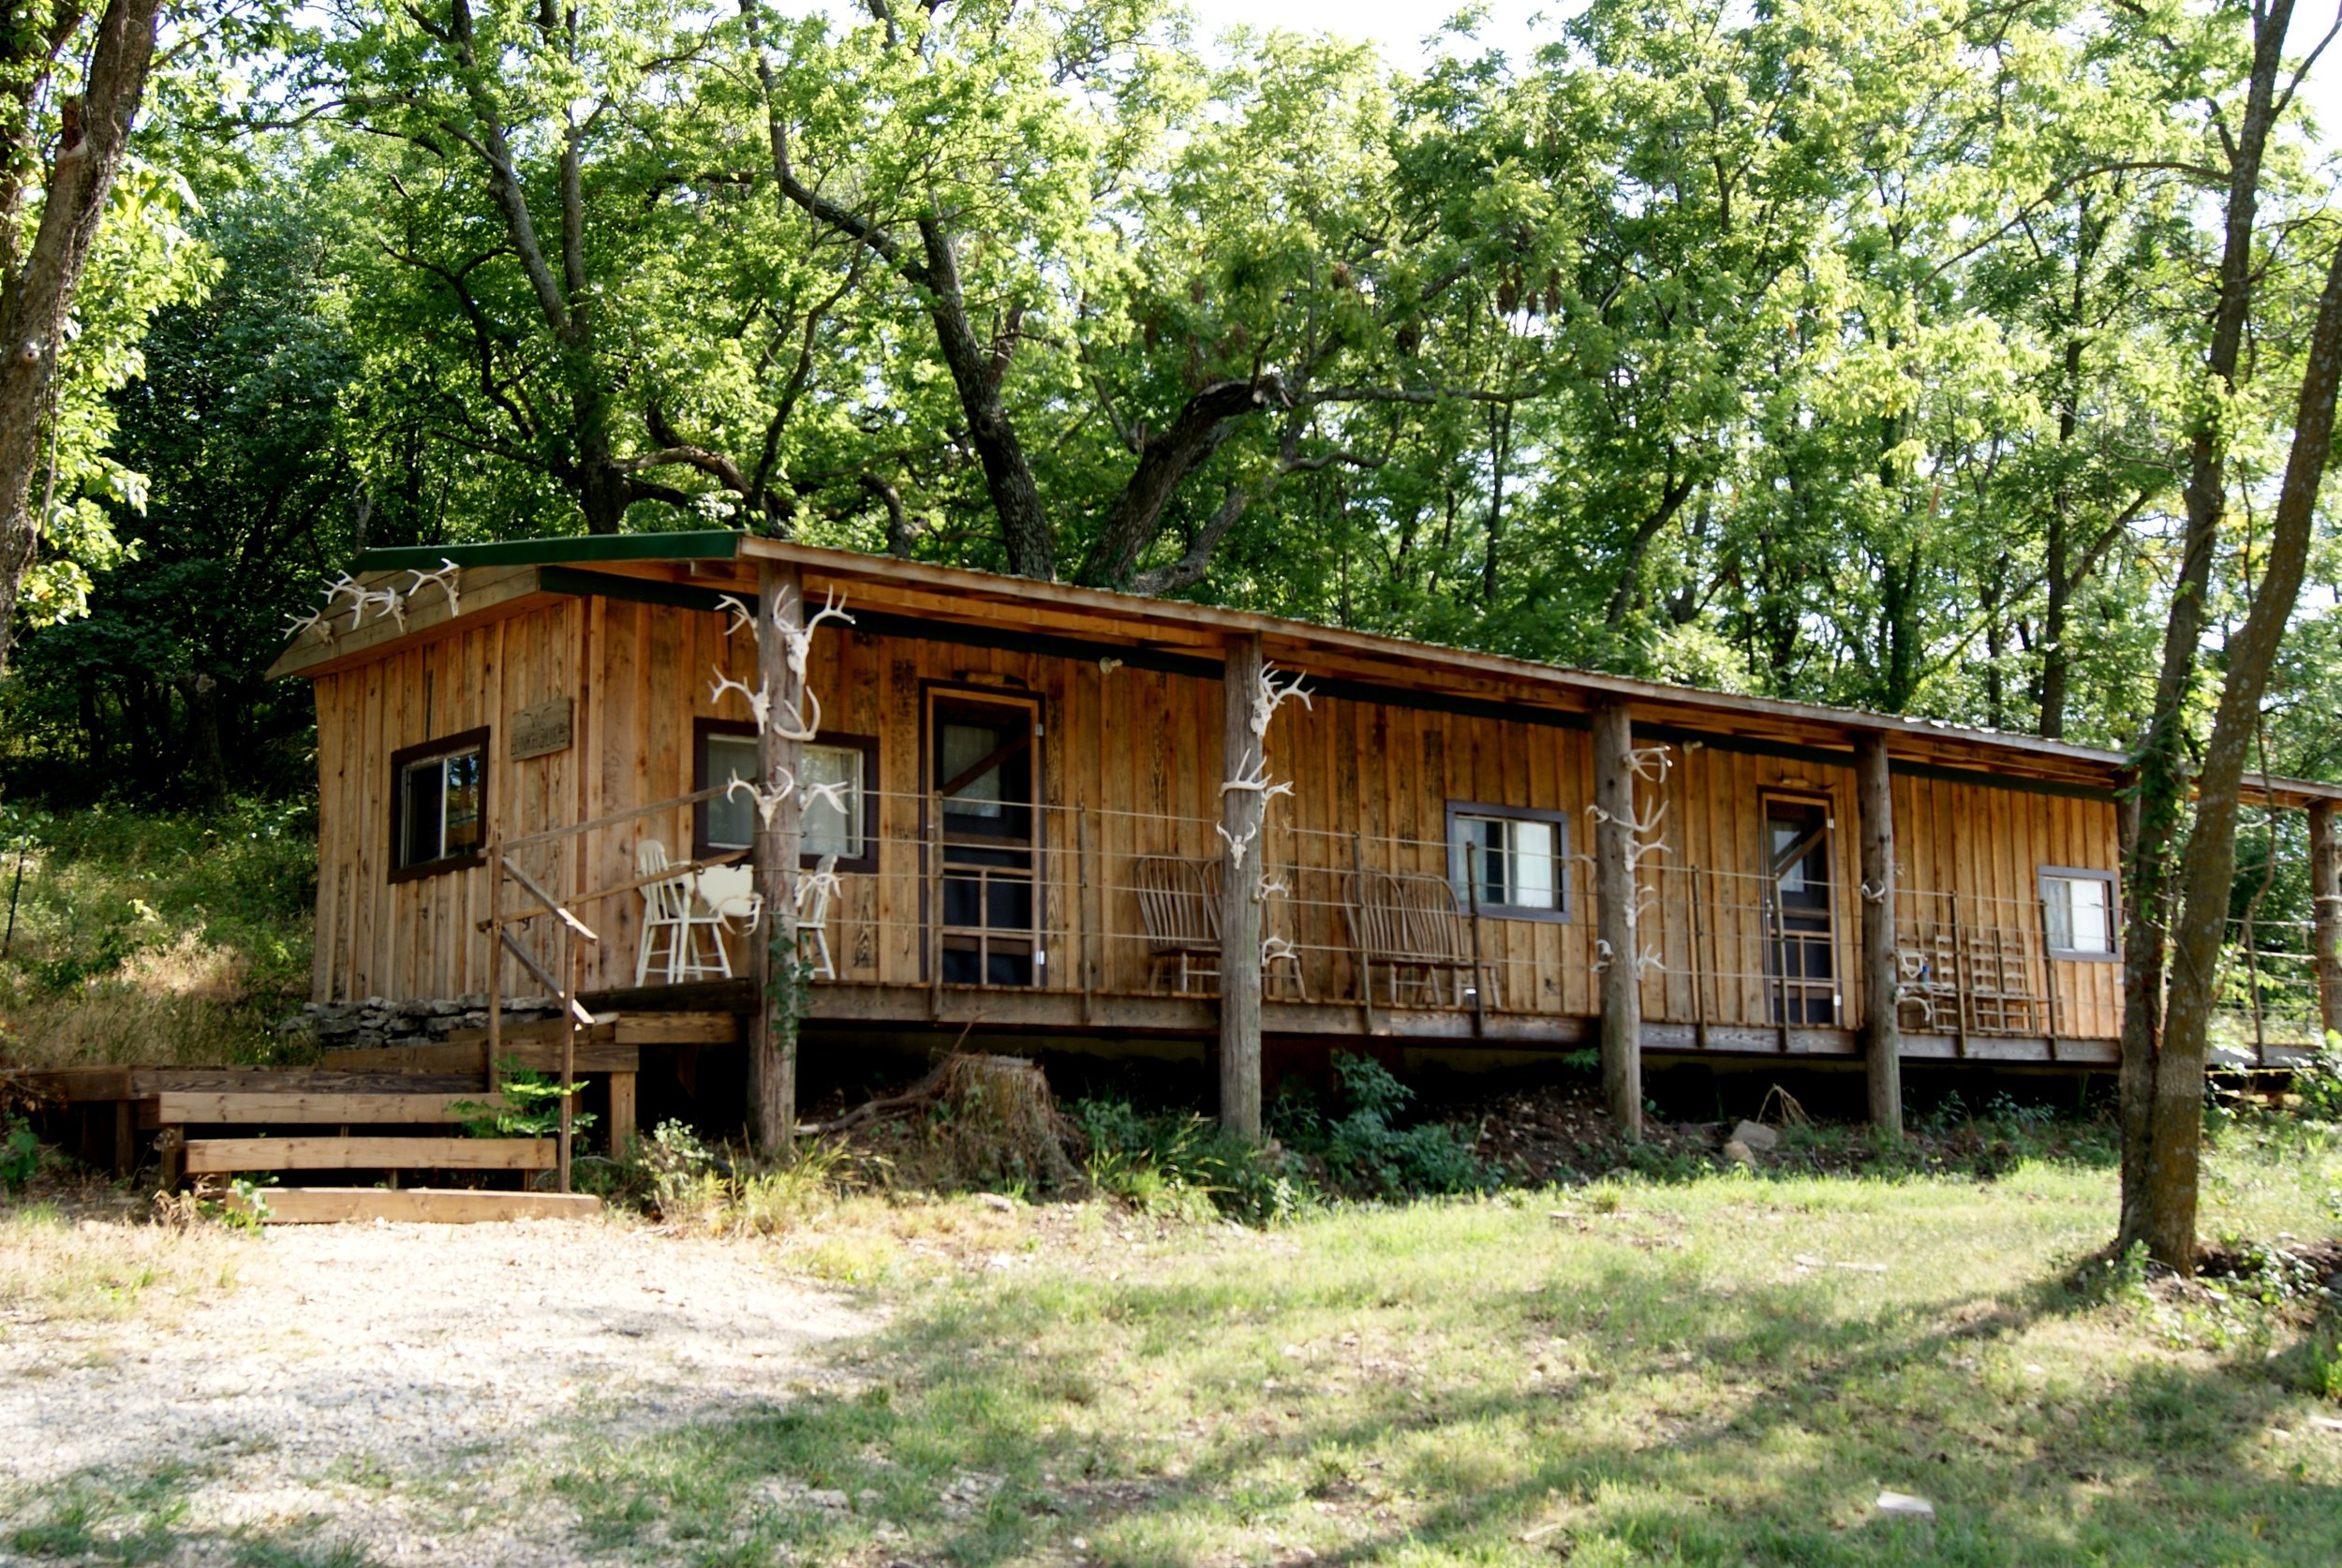 The Bunkhouse at the Flying W Ranch